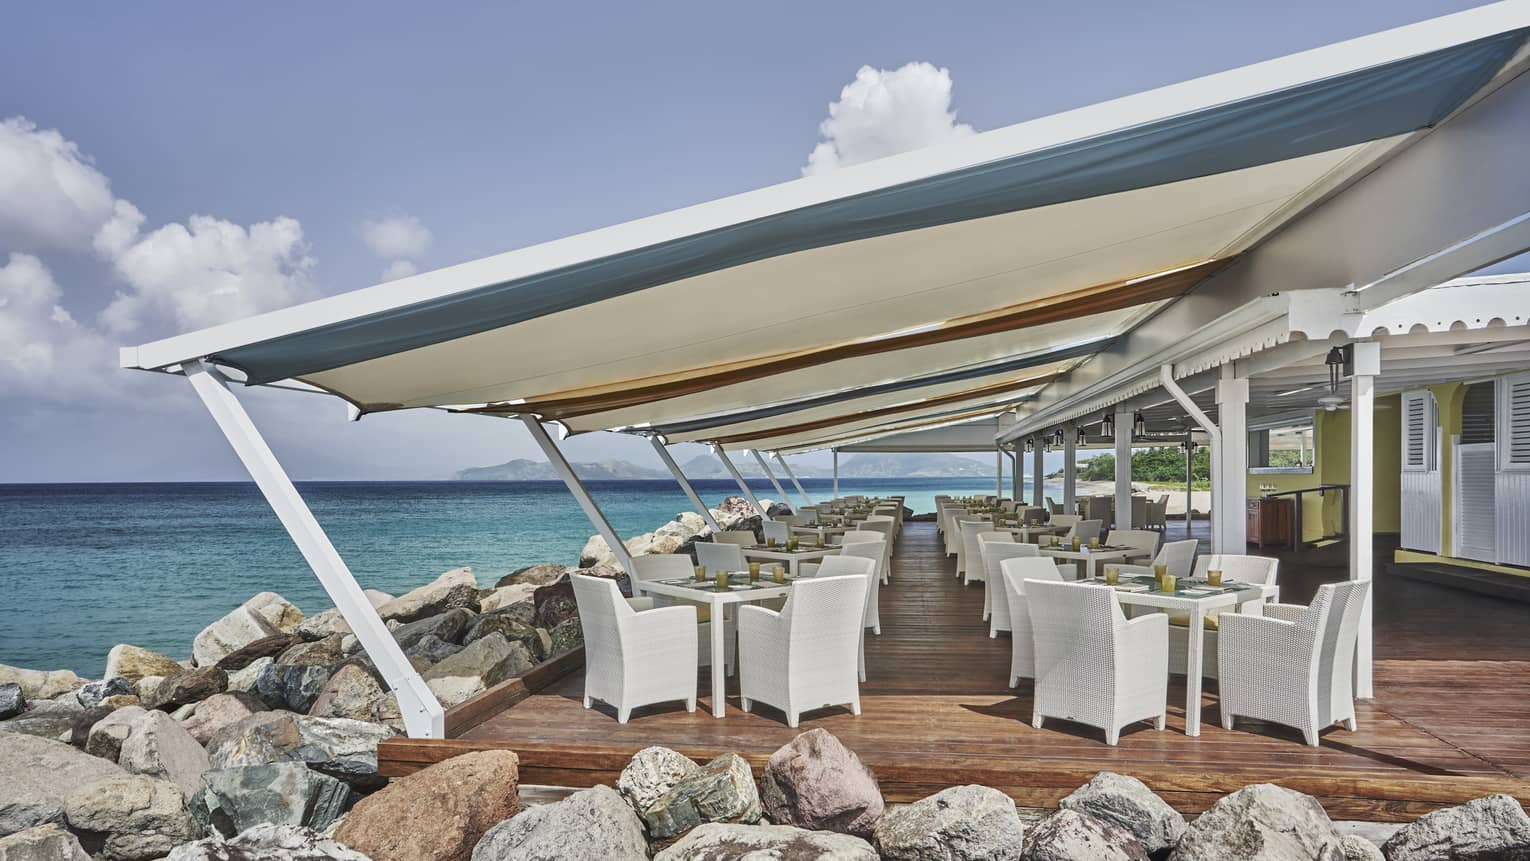 Outdoor restaurant covered by large awning, set next to large rocks and the sea